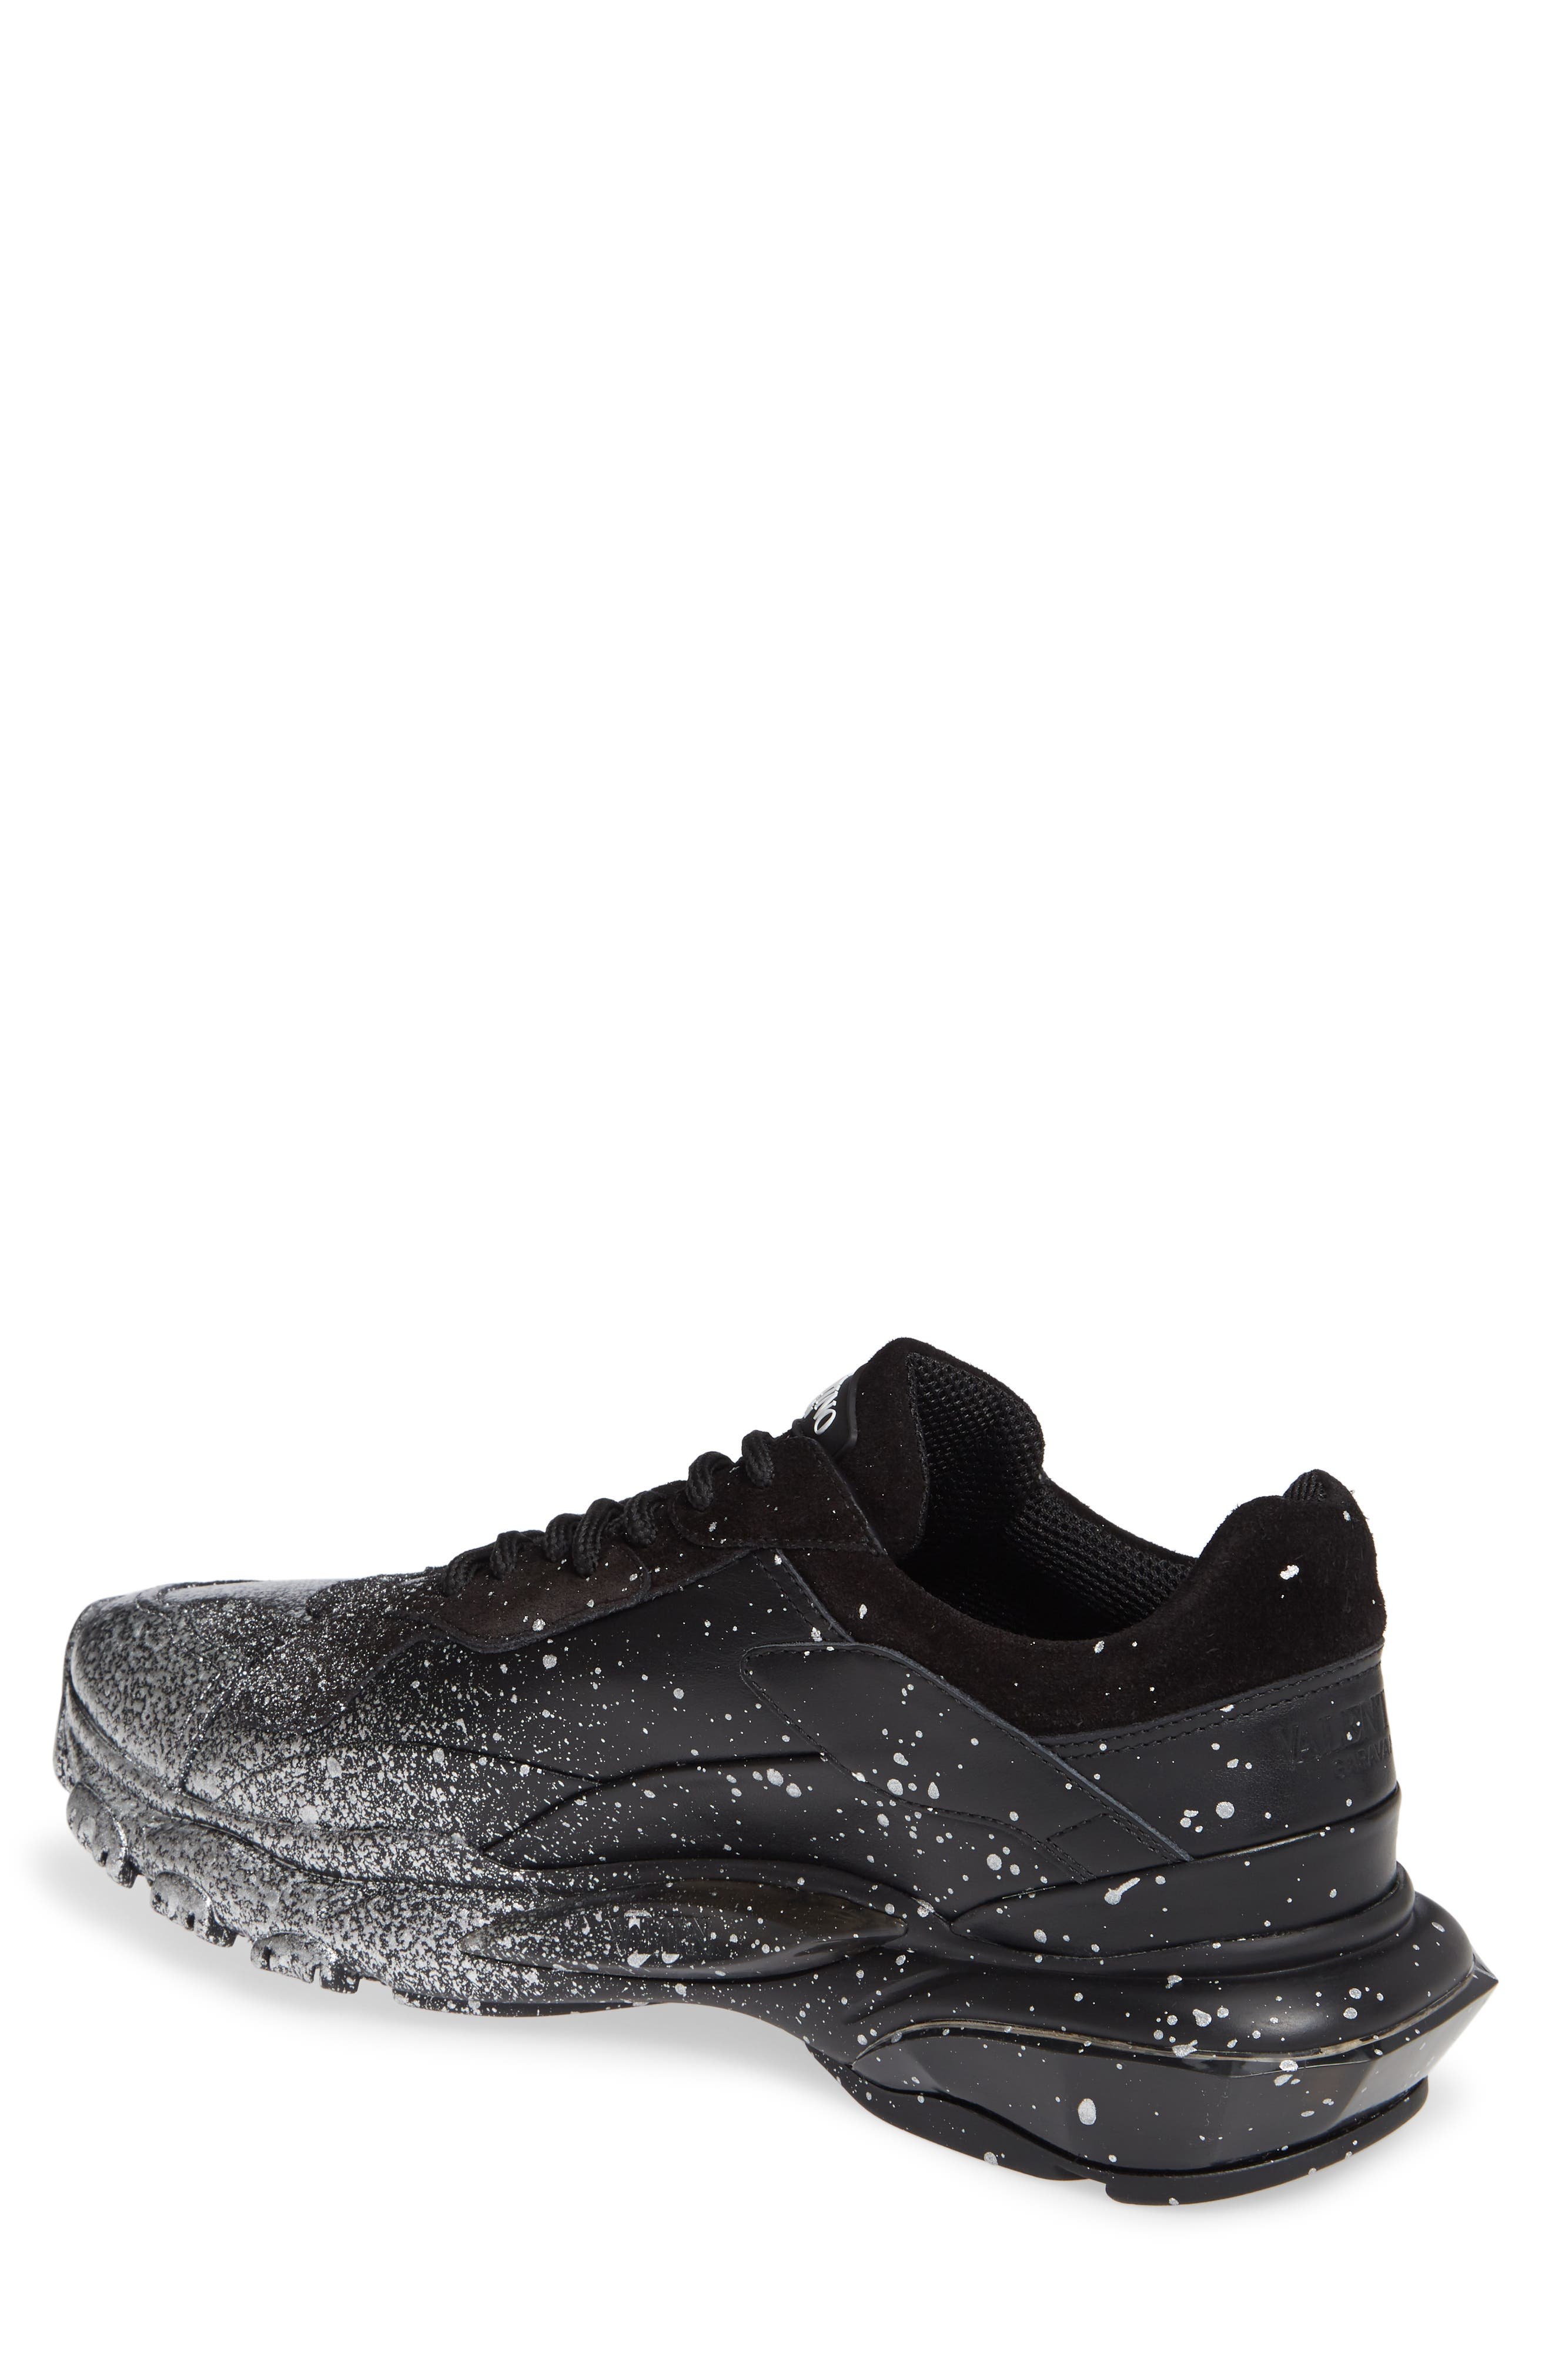 Bounce Paint Splatter Sneaker,                             Alternate thumbnail 2, color,                             BLACK/ SILVER